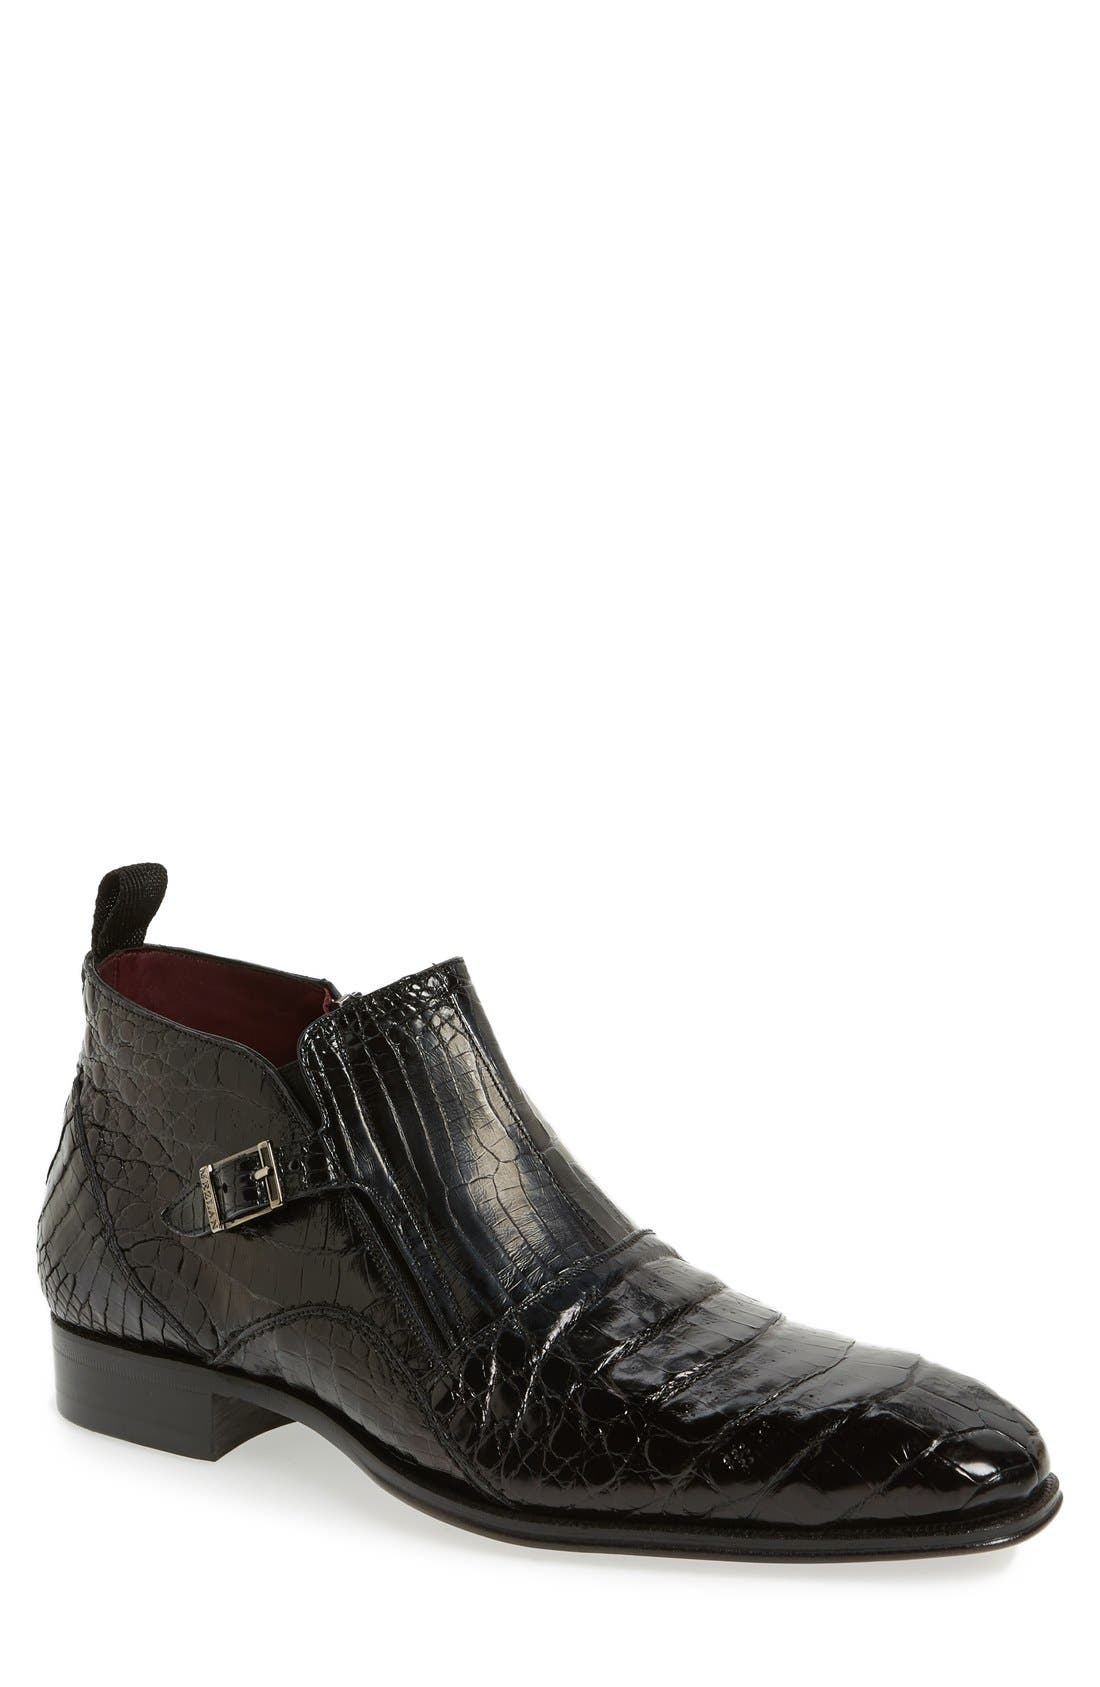 'Bene' Chelsea Boot,                             Main thumbnail 1, color,                             001